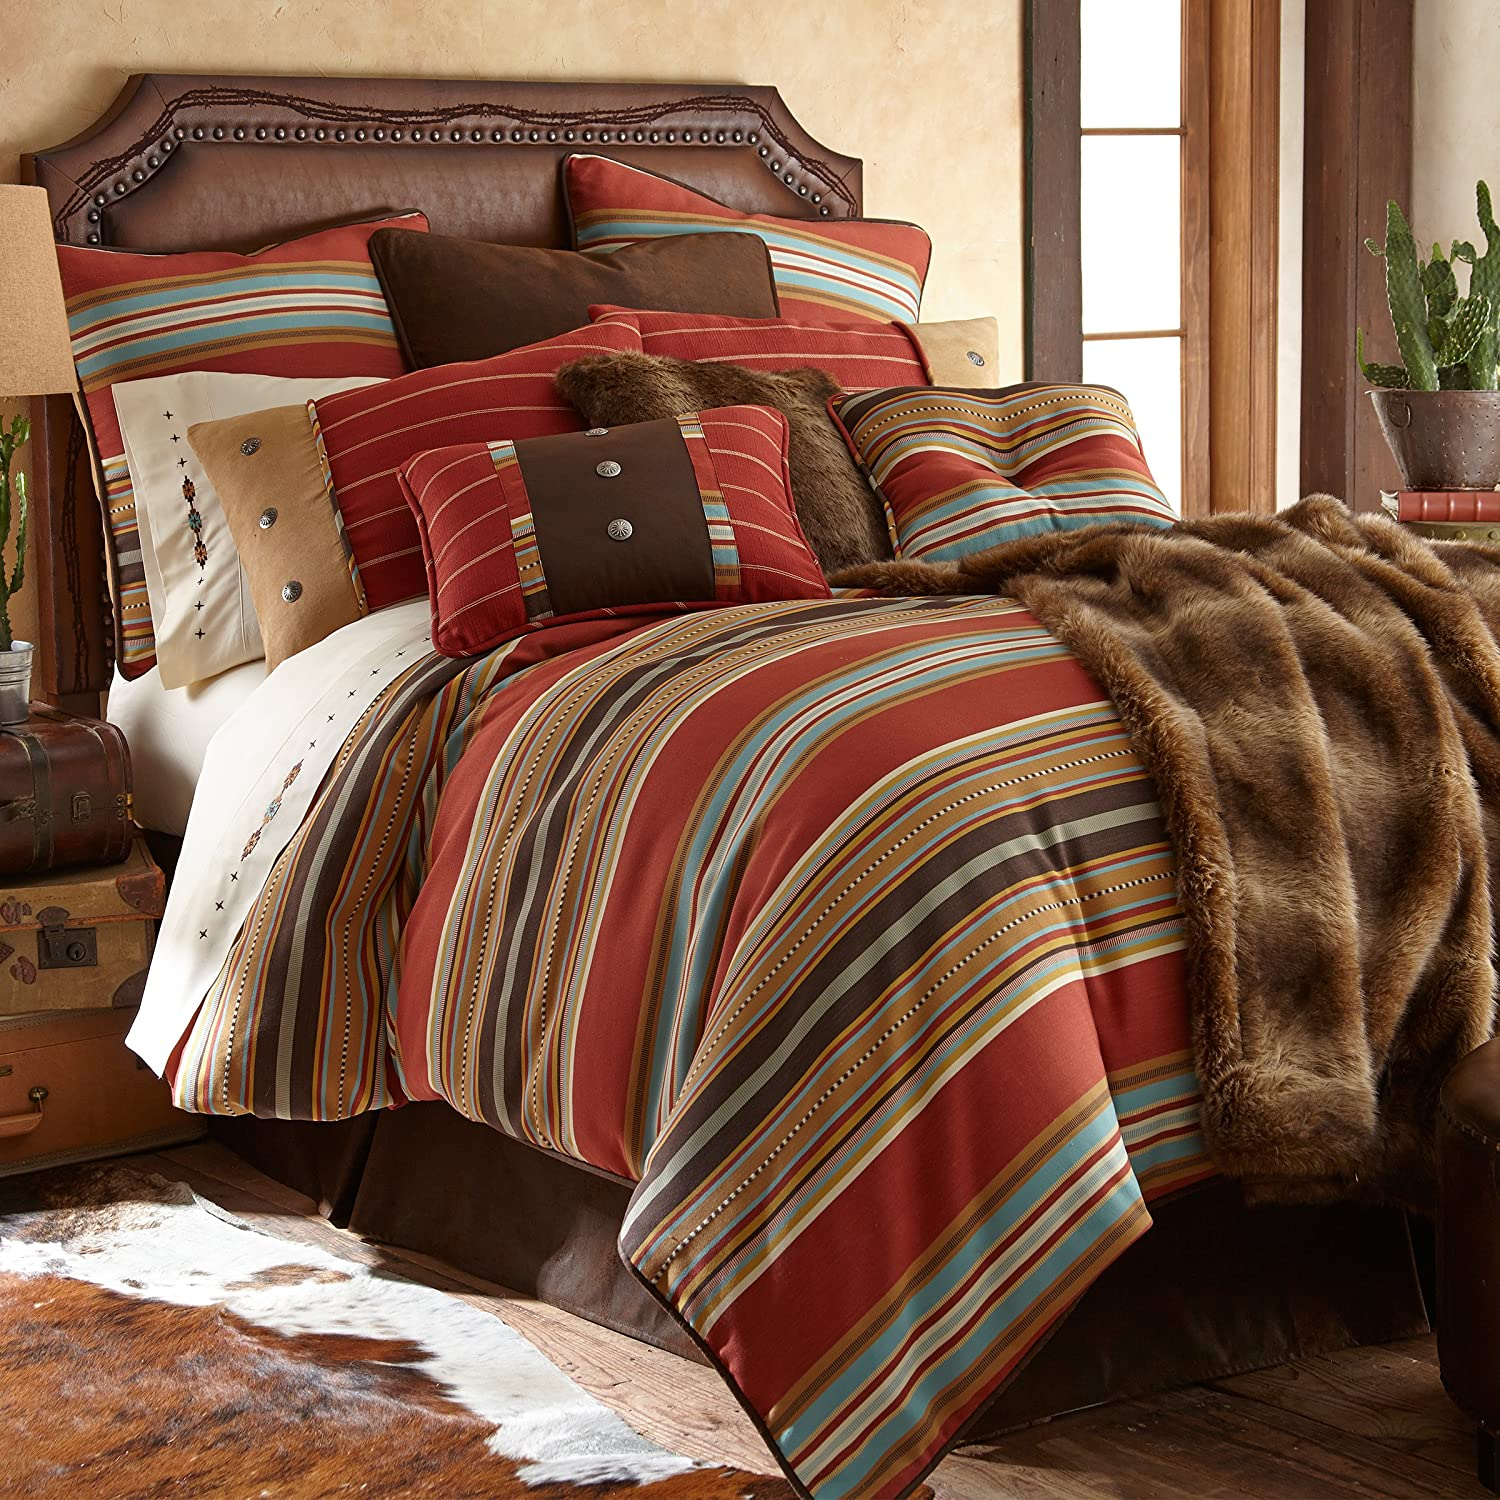 HiEnd Accents 5 Piece Calhoun Western Bedding Set, Super King